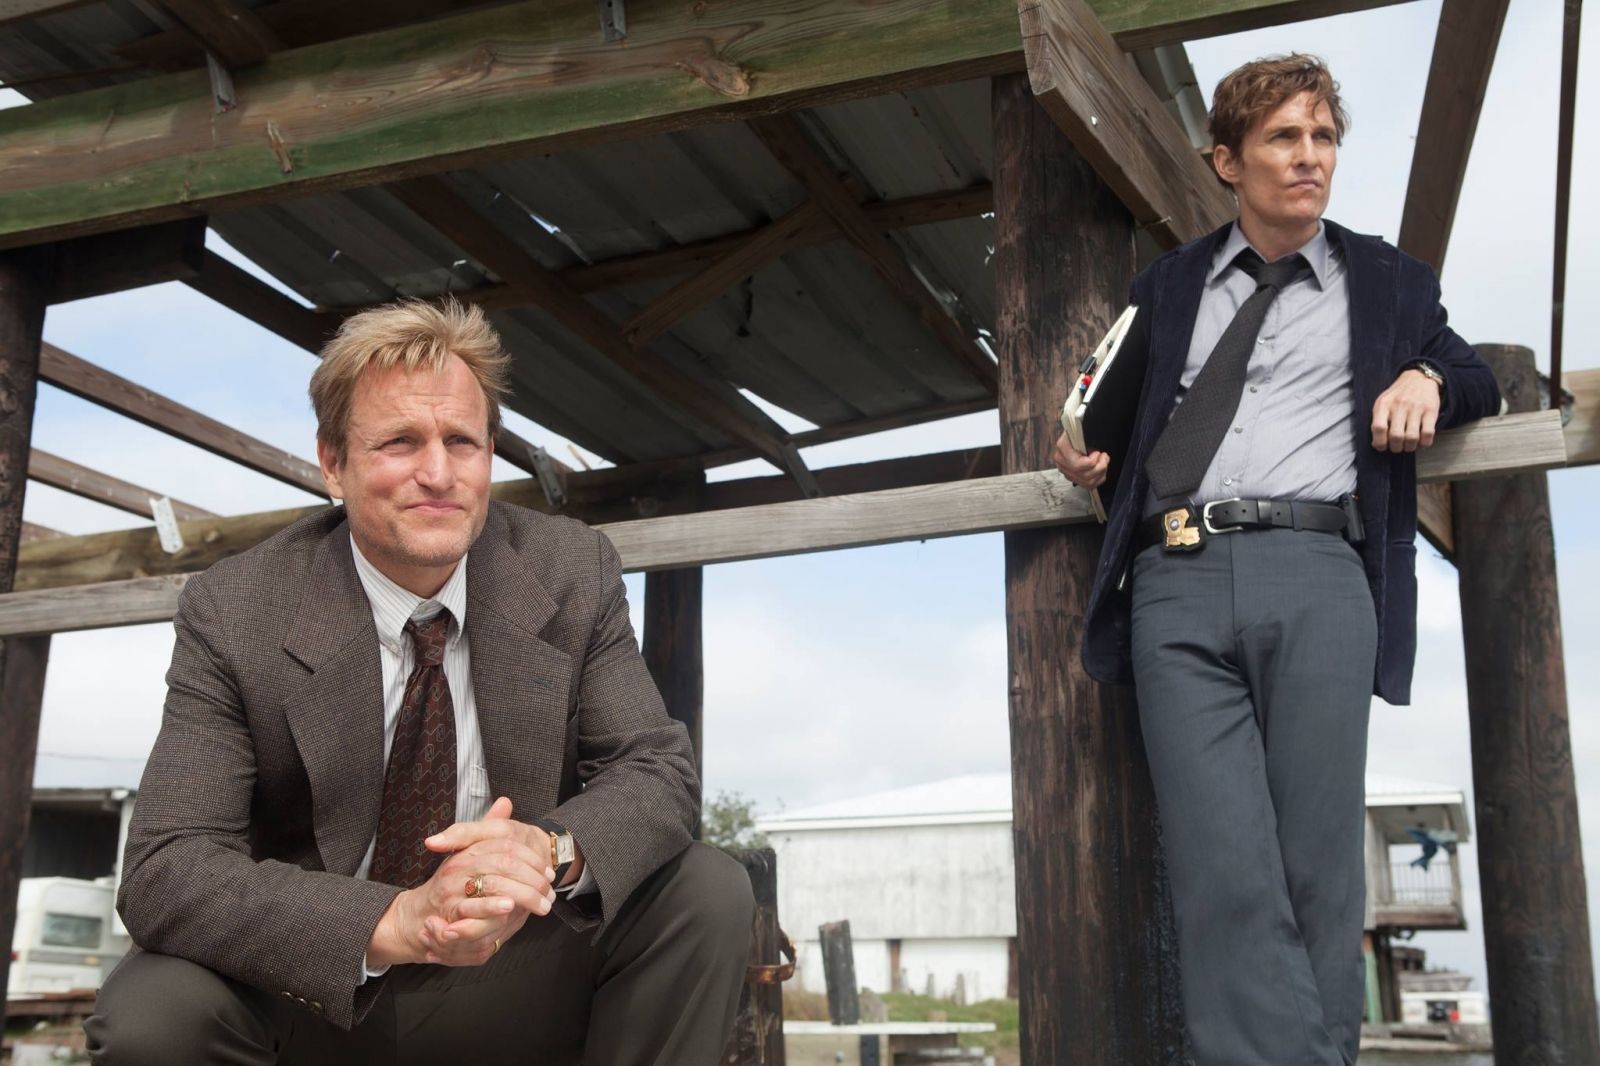 True Detective Season 2 trailer to premiere soon? Leaked plot suggests occult murderer on the loose